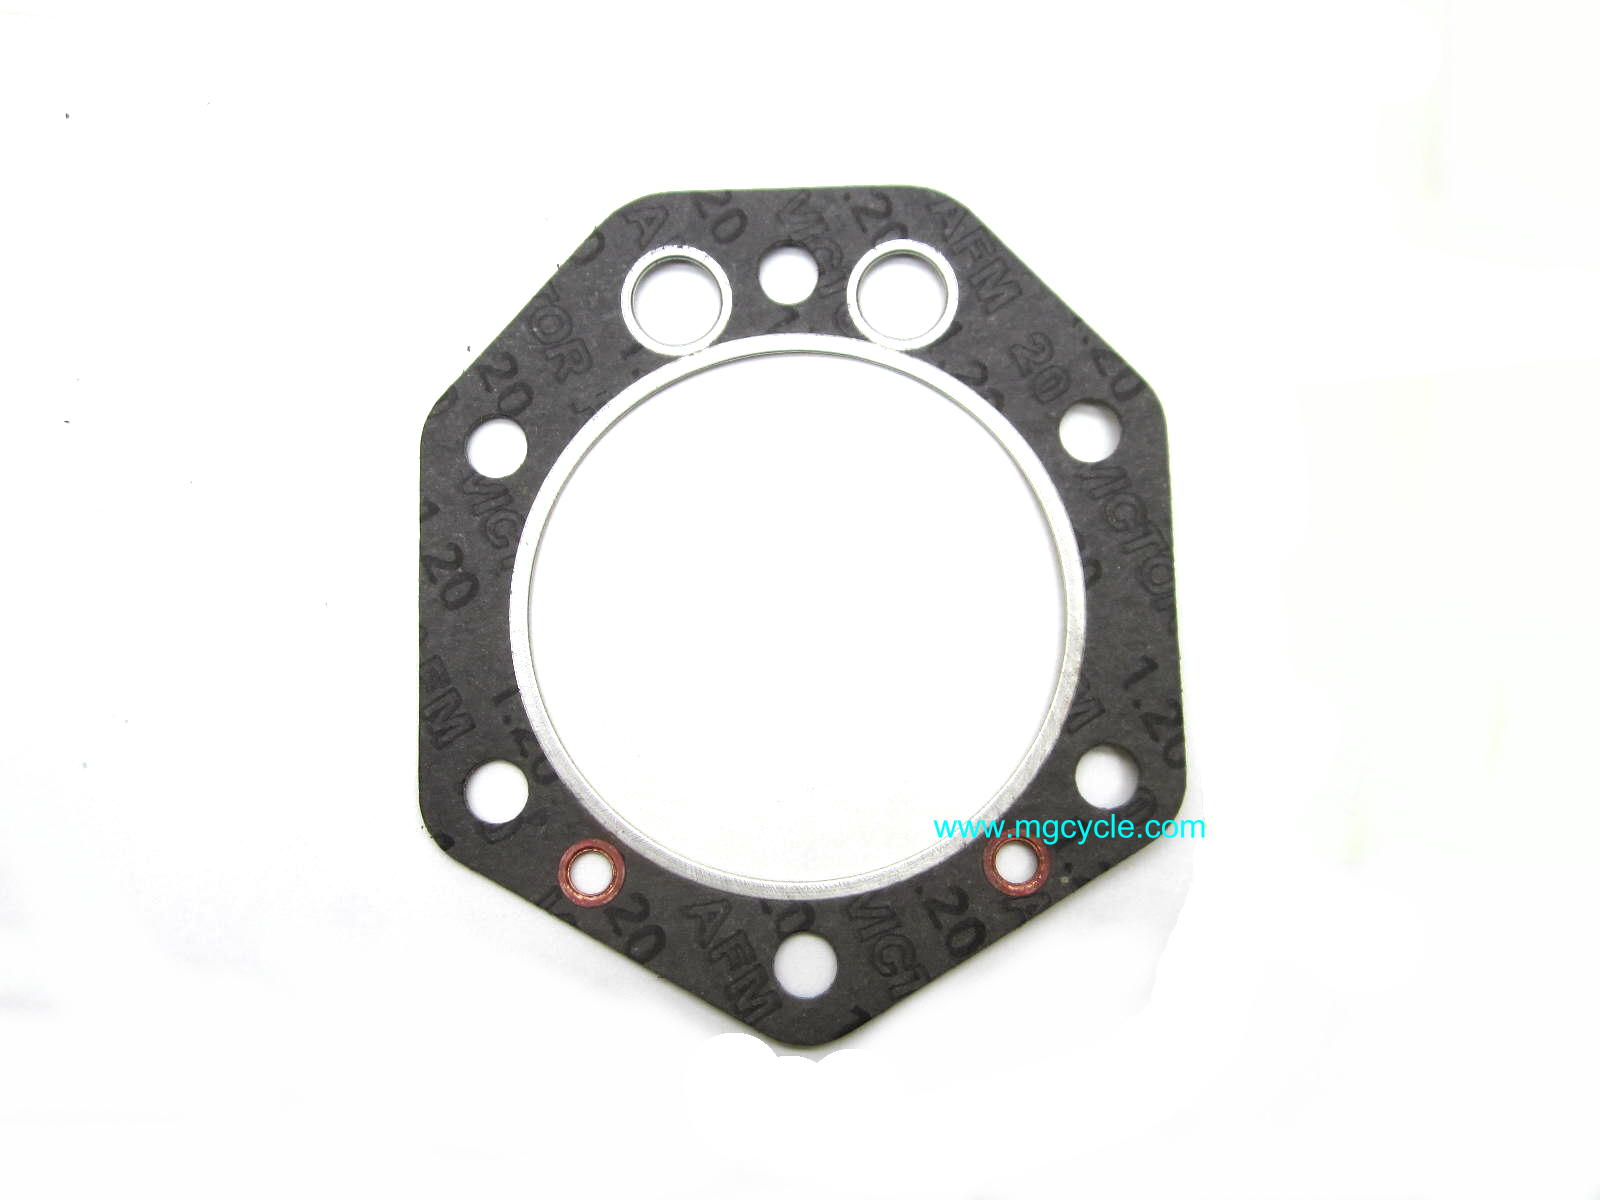 Head gasket for 1100cc, 92mm, 2 valve, square fins